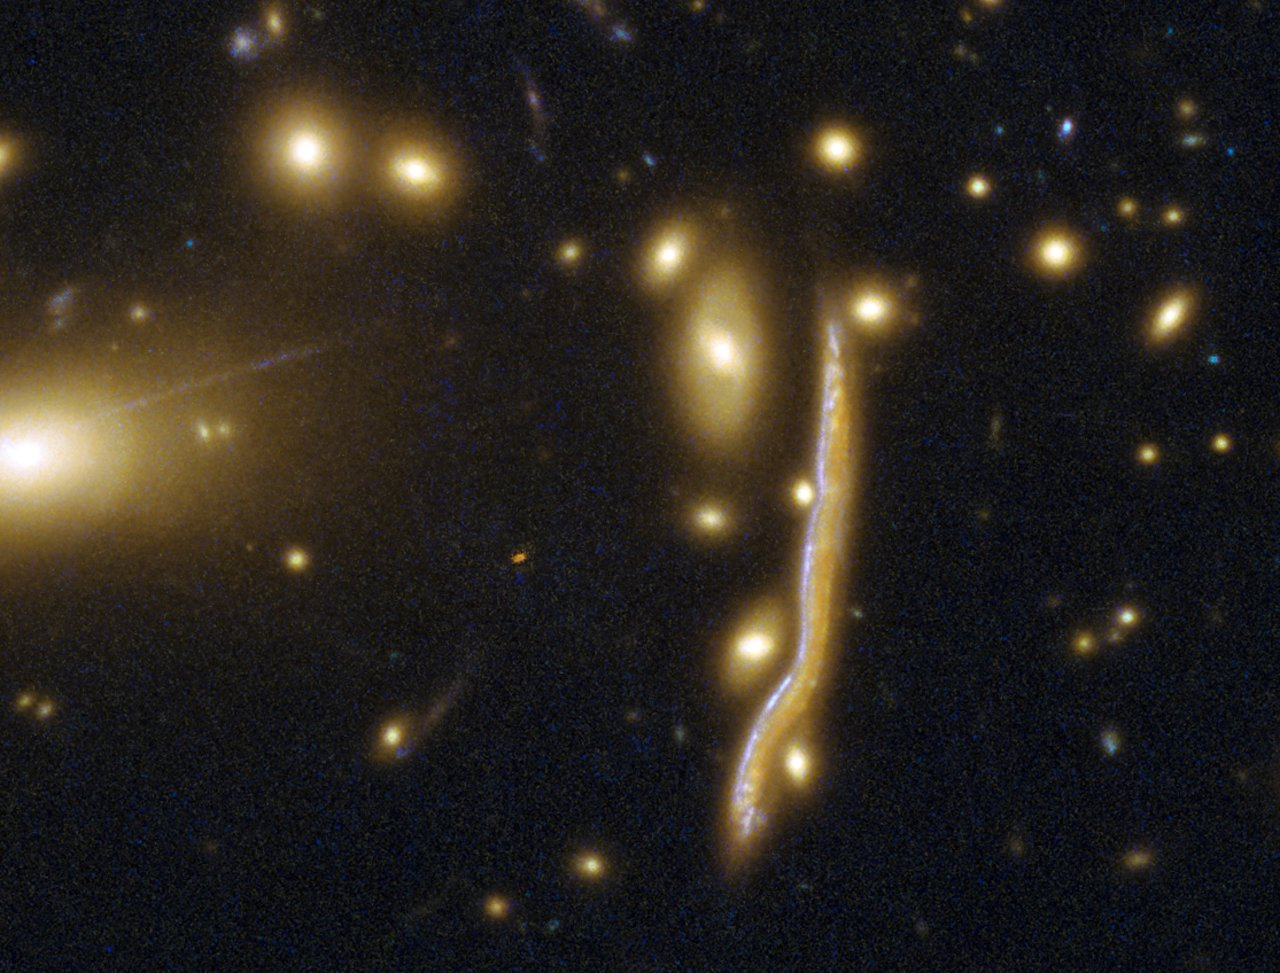 Cosmic snake pregnant with stars